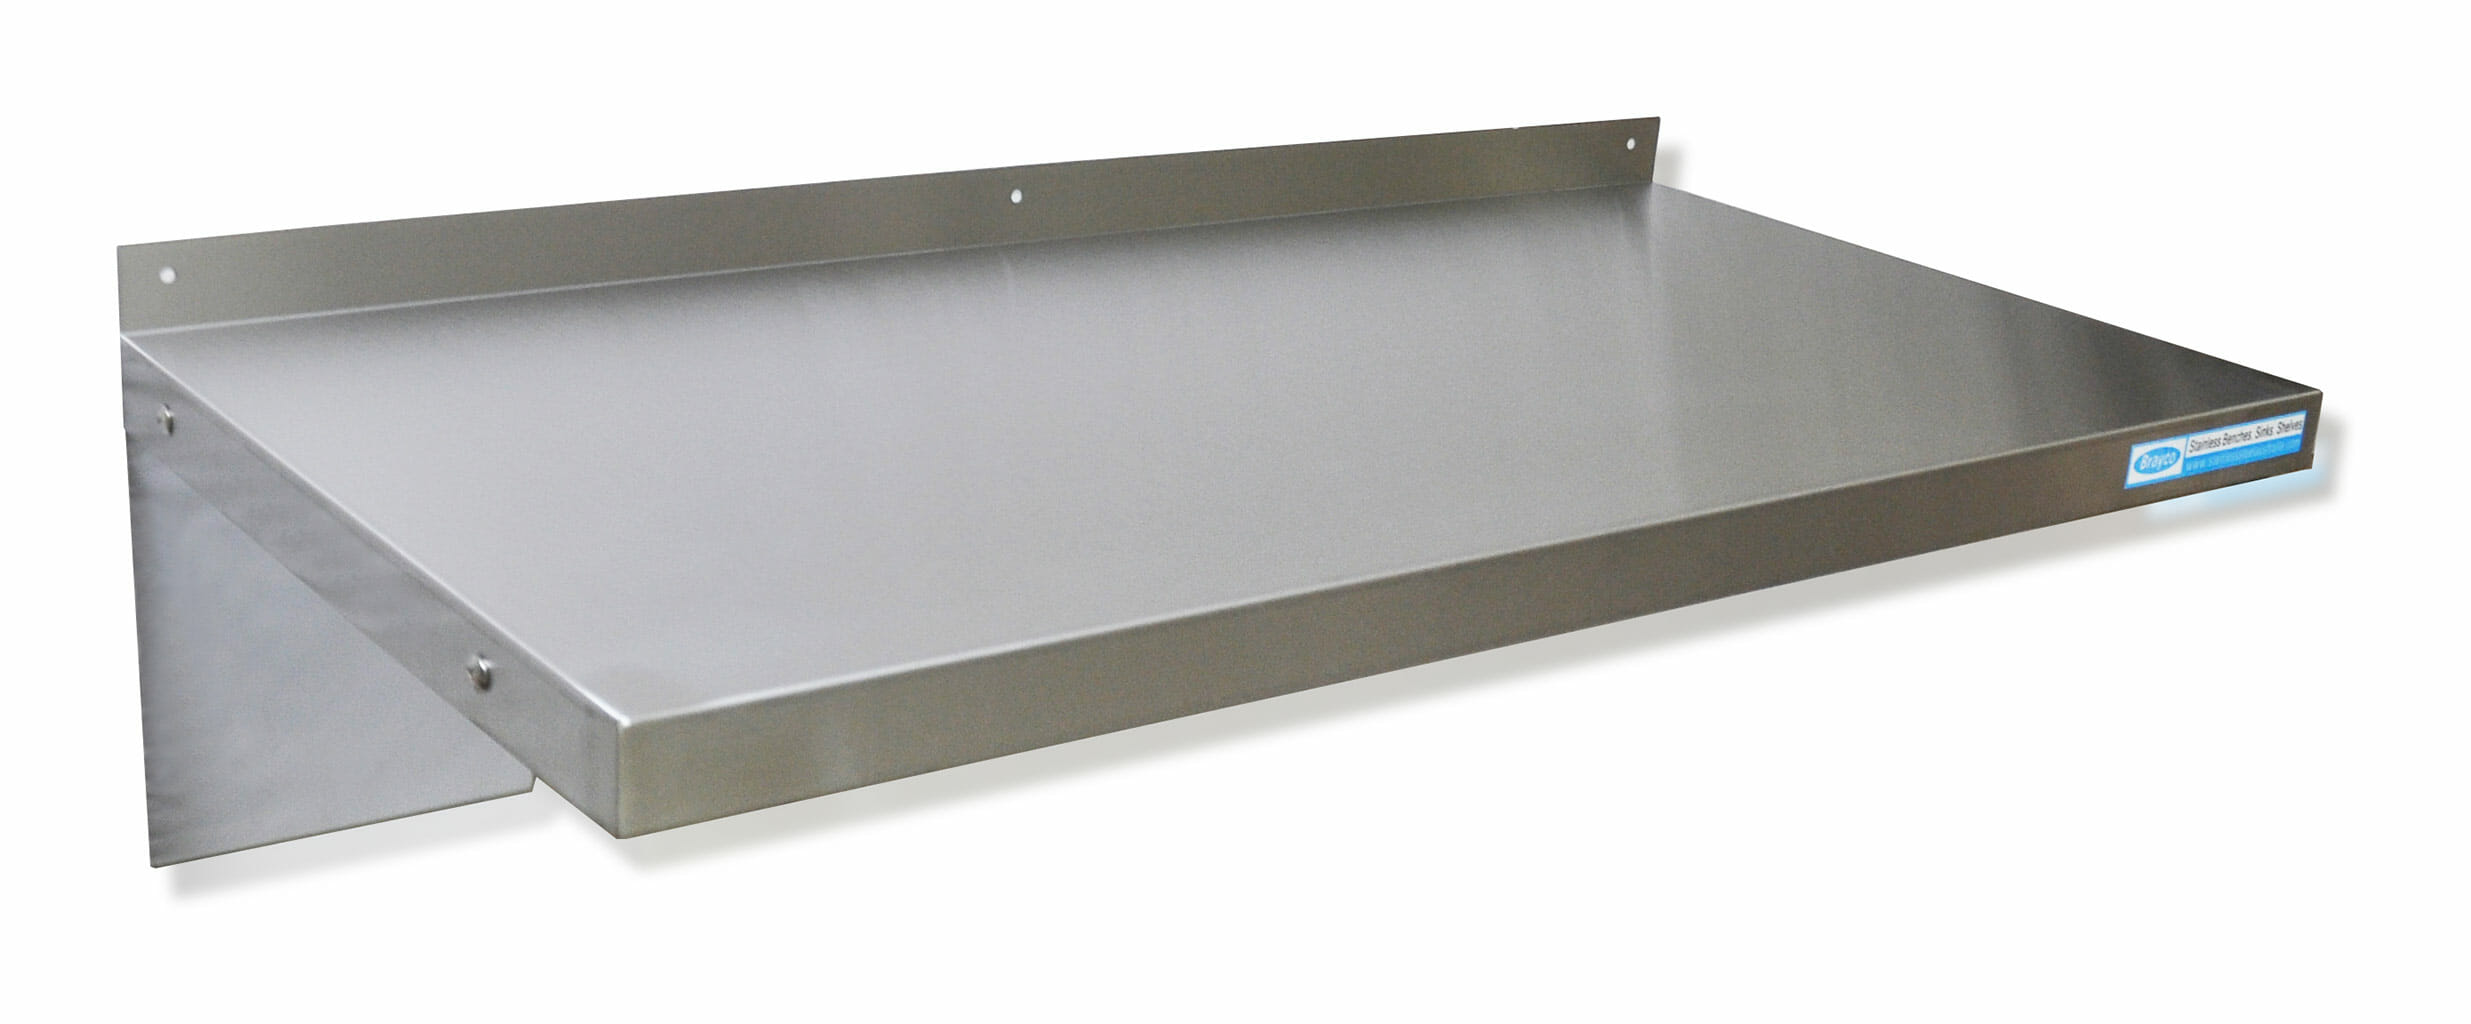 Stainless Steel Solid Wall Shelf, 900 X 450mm deep